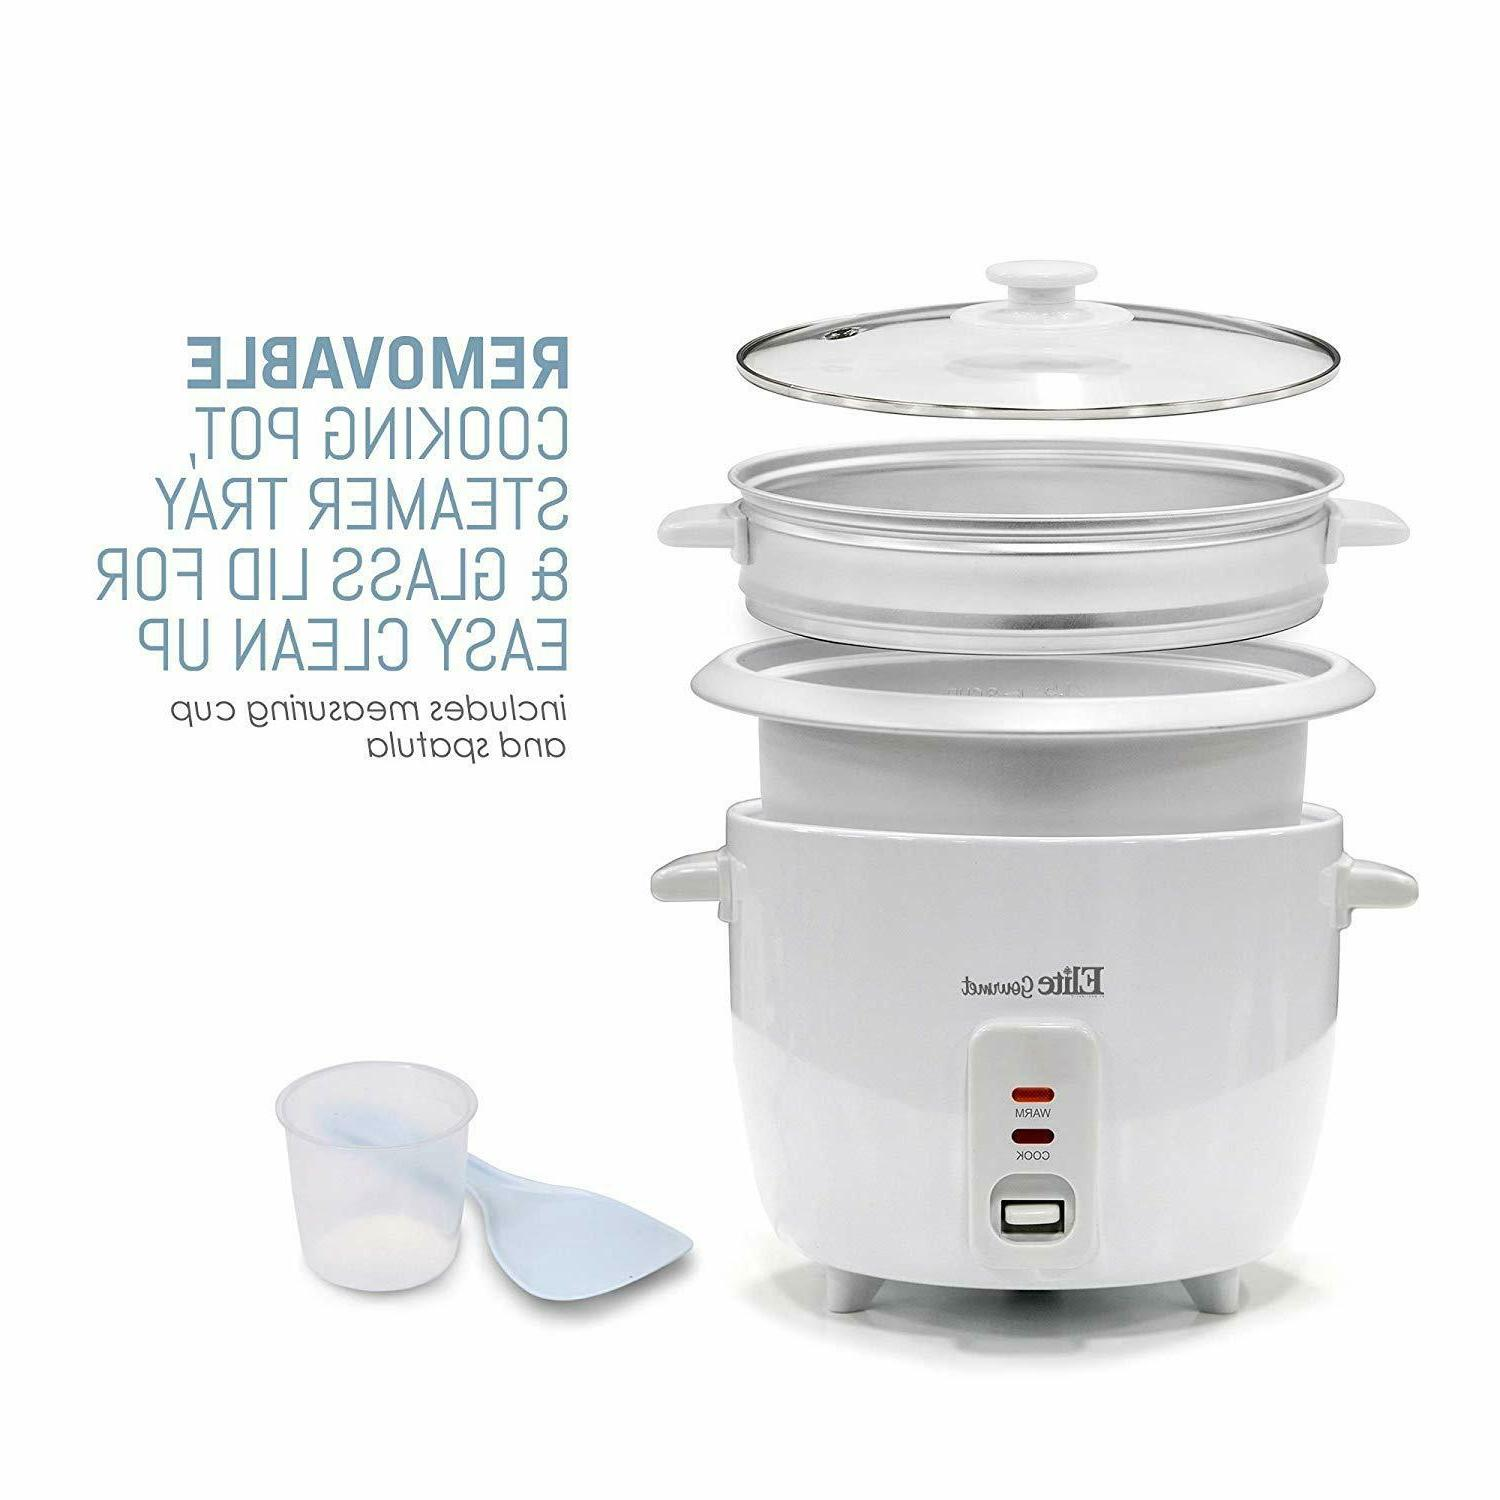 with Steamer Warm Makes Grains